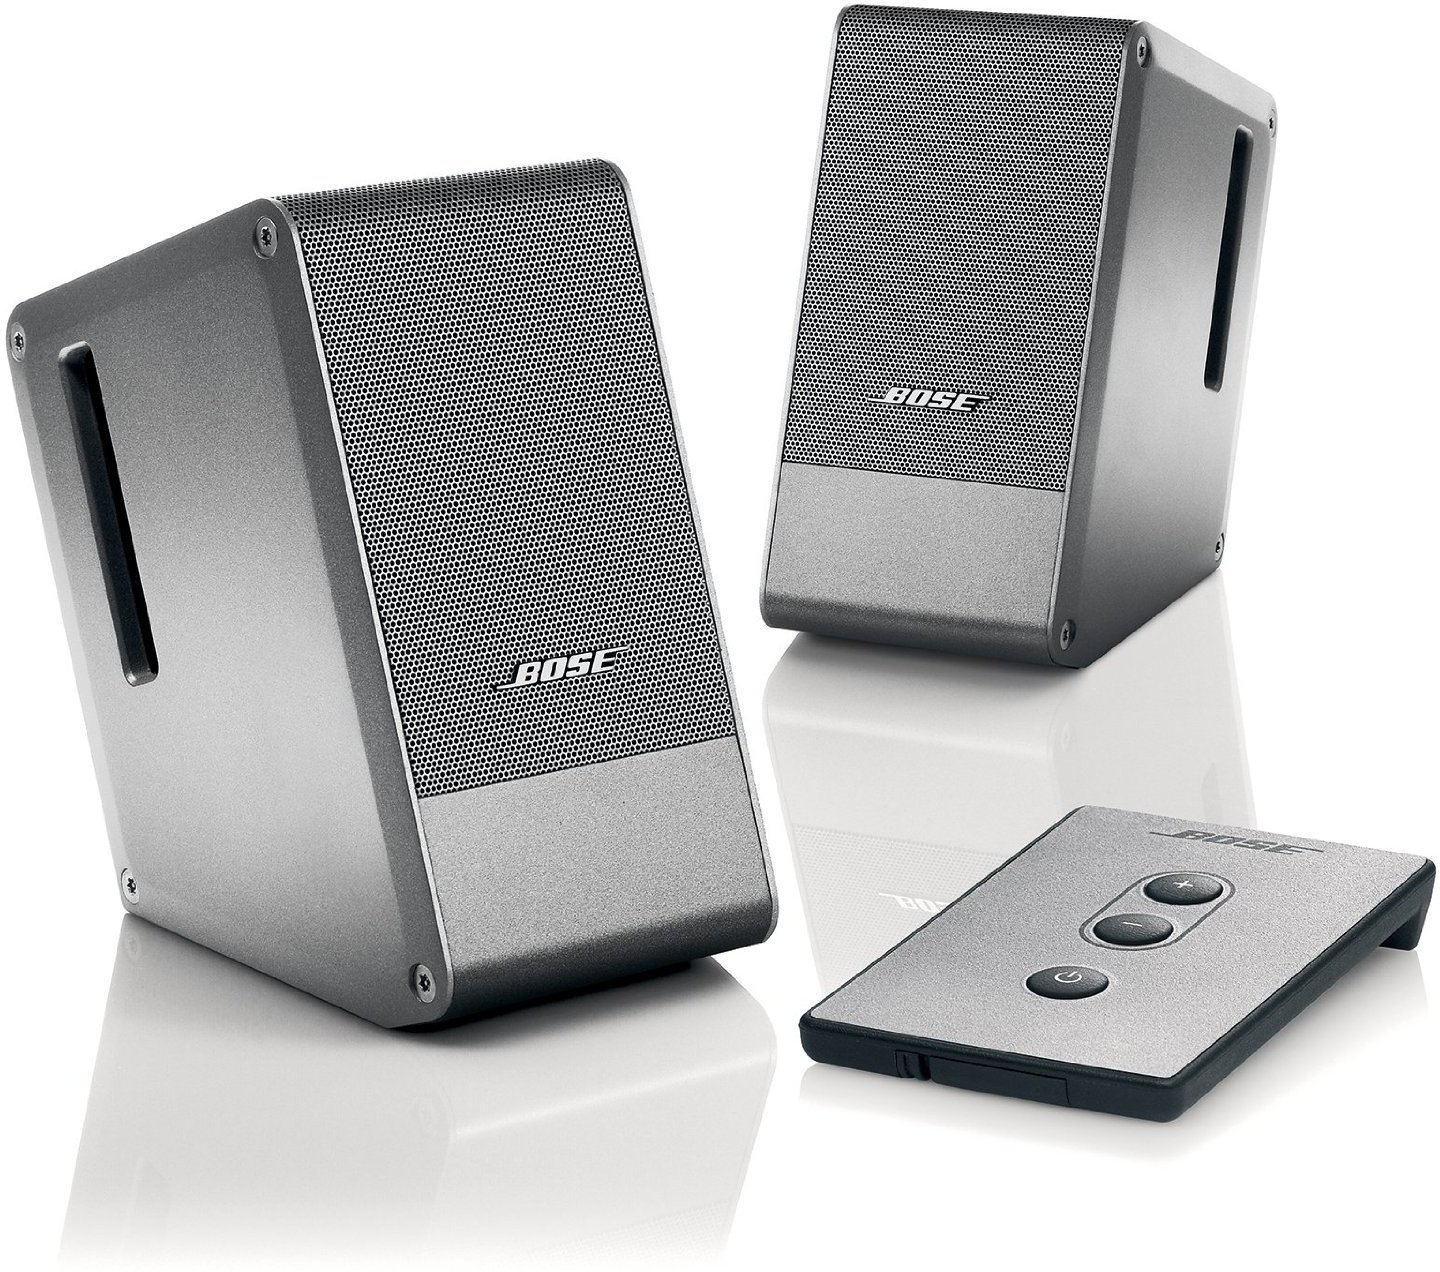 bose computer music monitor djmania. Black Bedroom Furniture Sets. Home Design Ideas